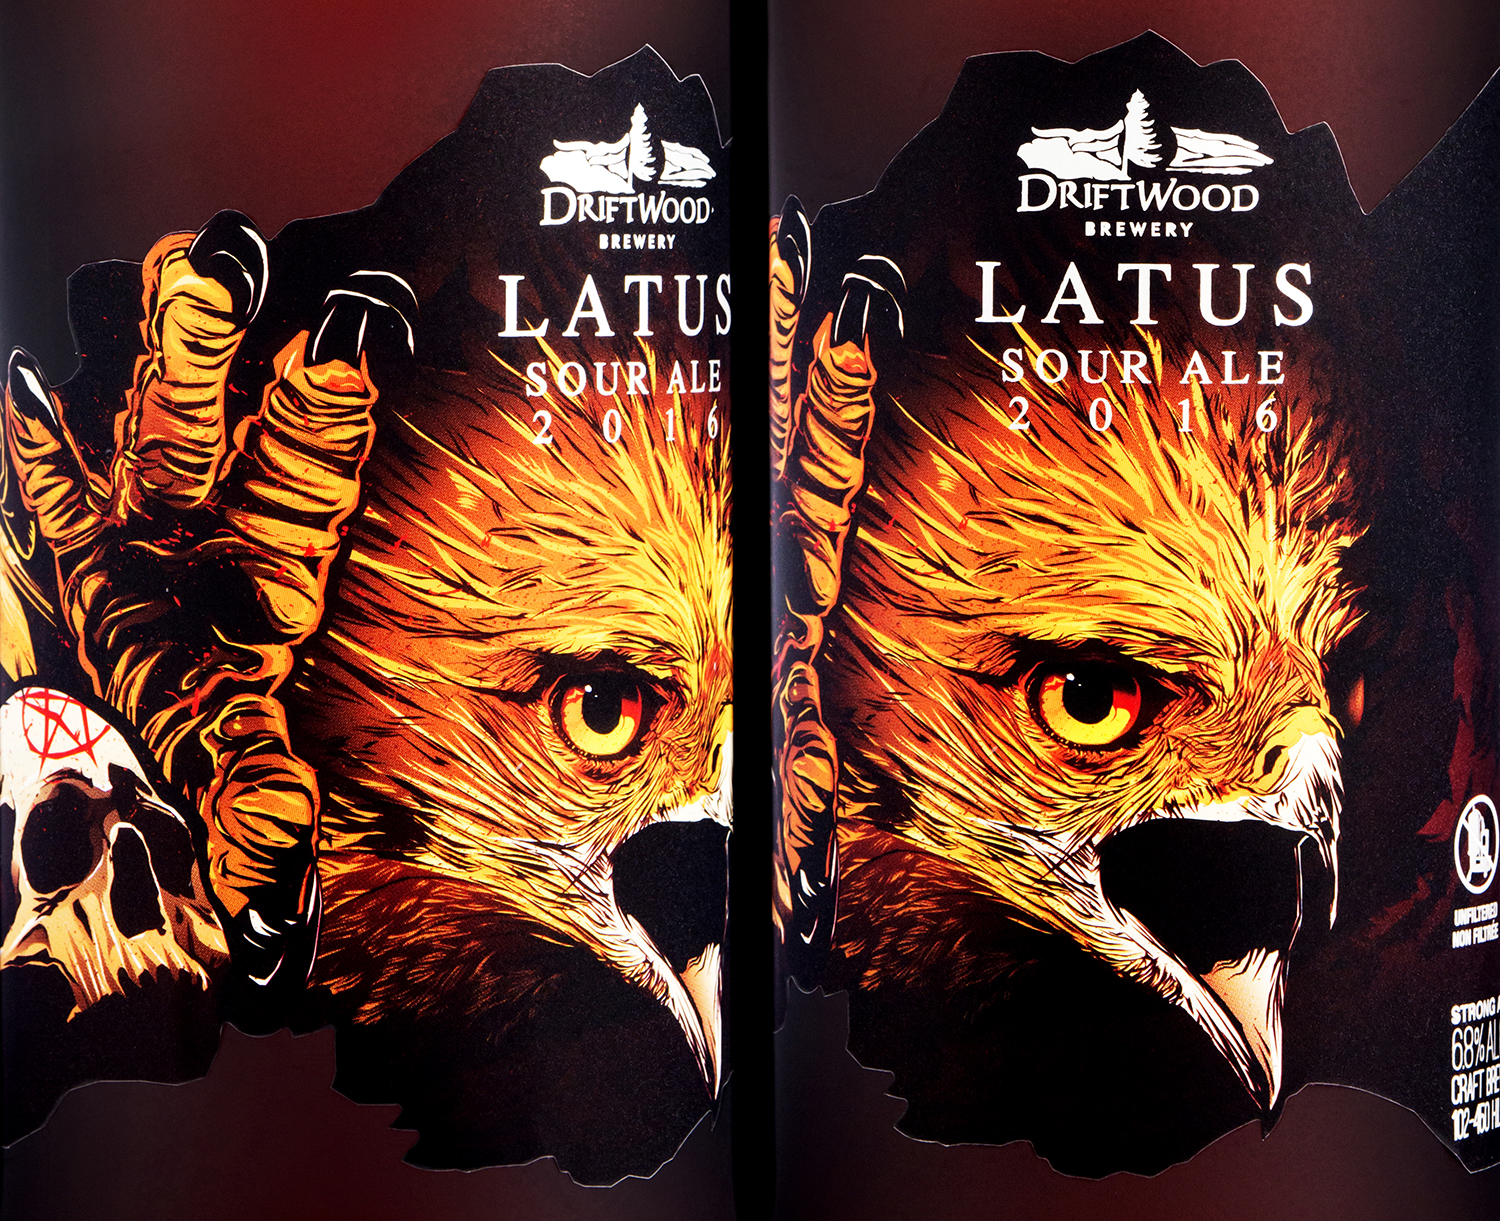 Packaging Design for Driftwood Brewery's Latus Sour Ale